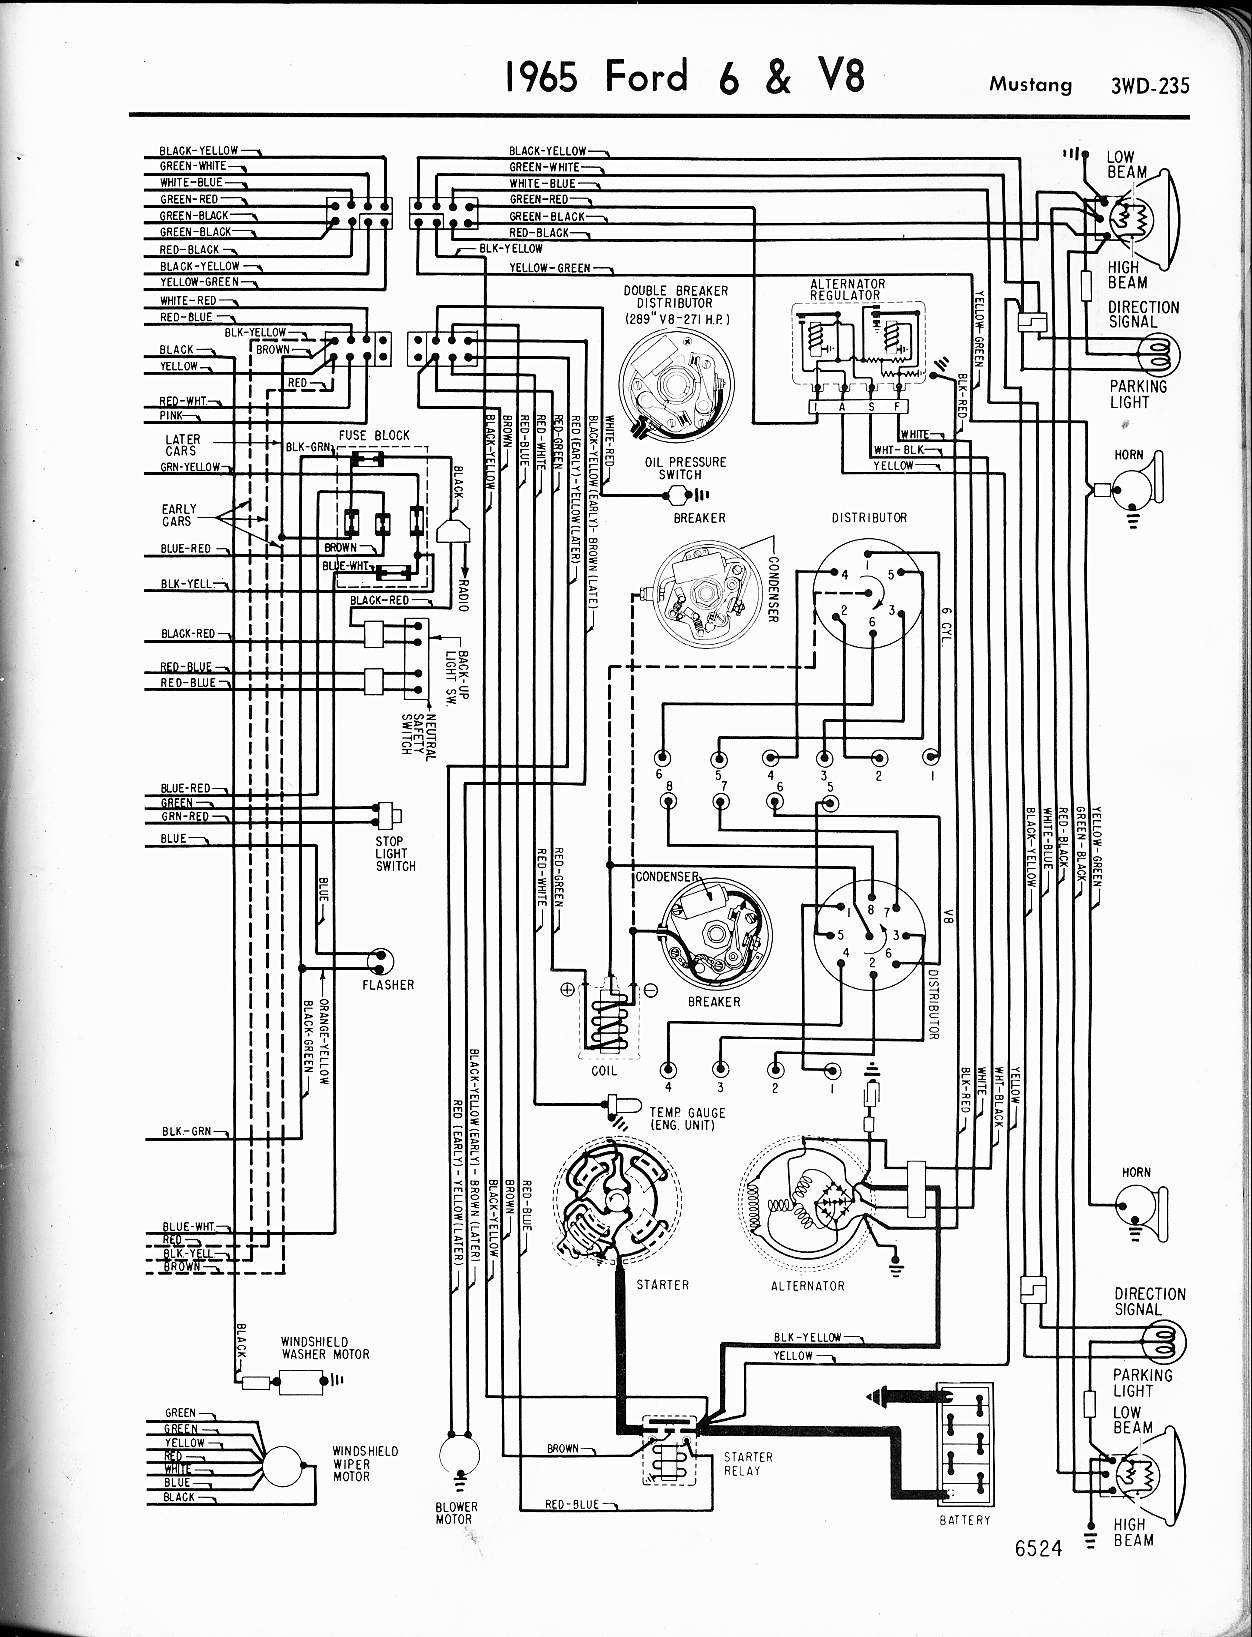 1969 Ford Ranchero Wiring Diagram Wire Data Schema Diagrams Rh Wizard Com 1967 Falcon